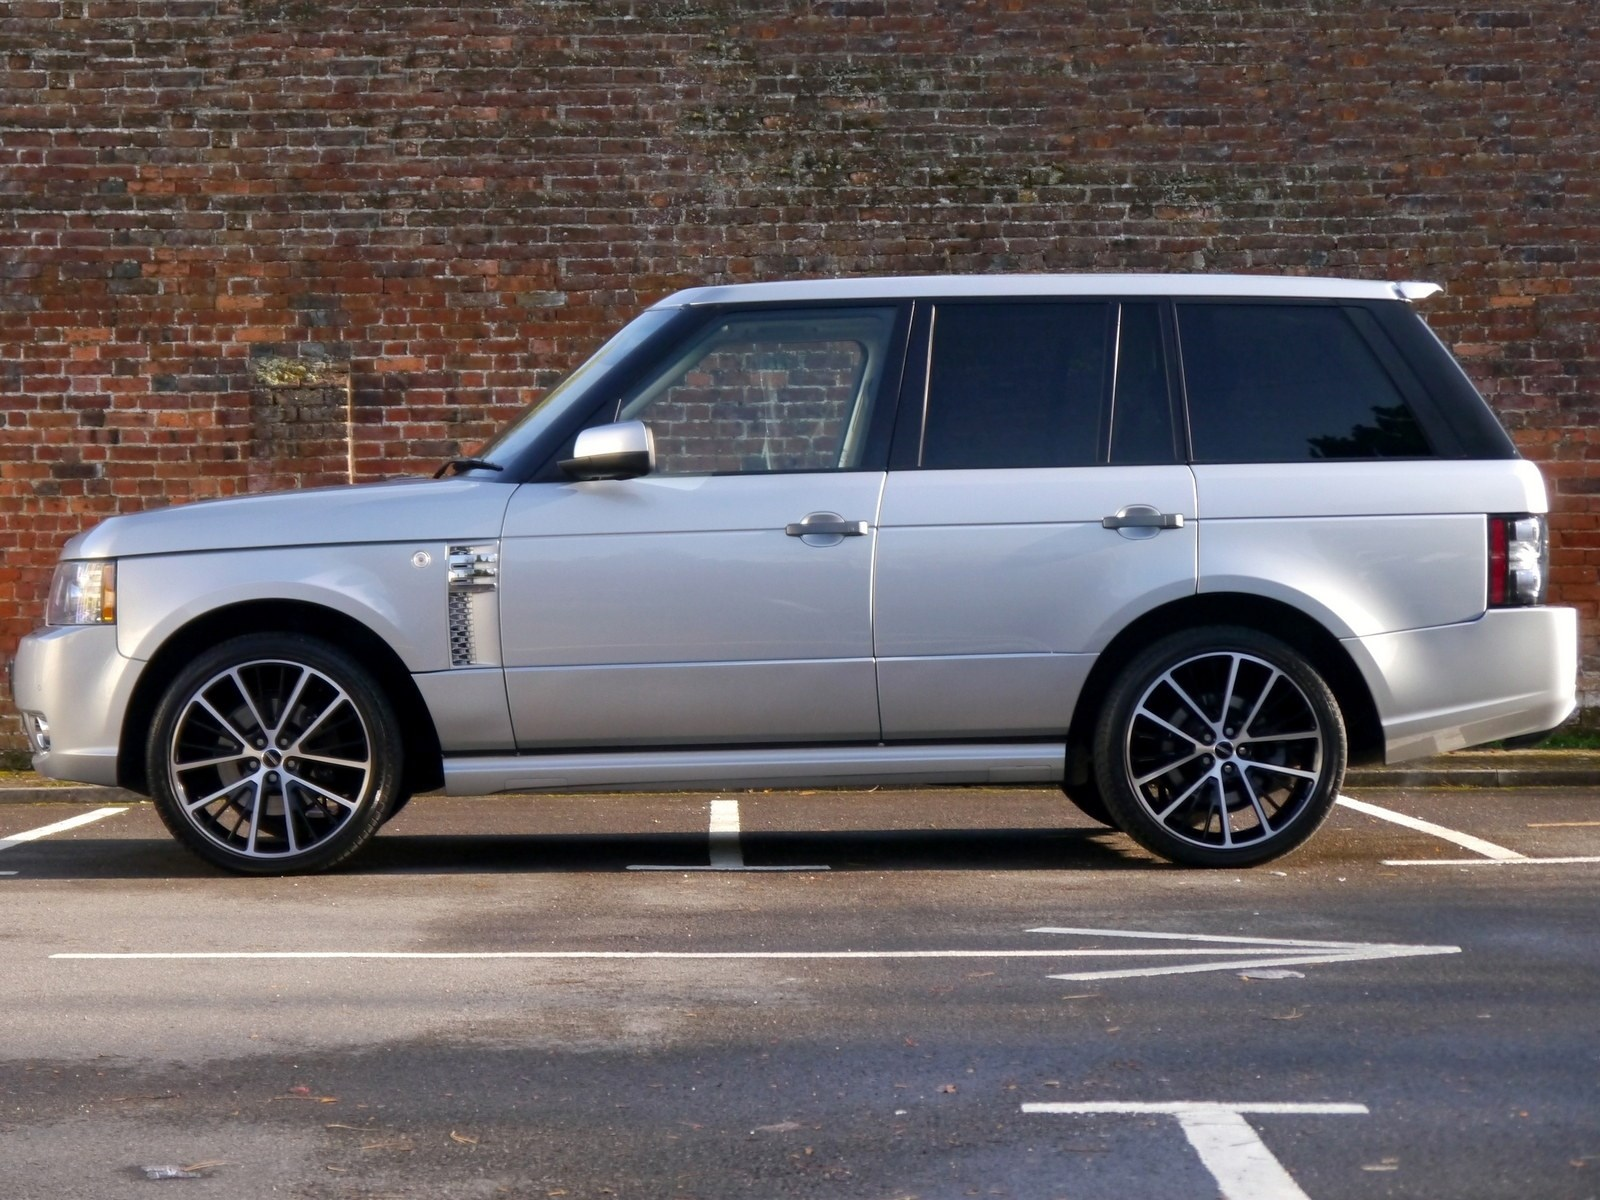 Land Rover Range Rover Vogue Tdv8 Overfinch Body Styling